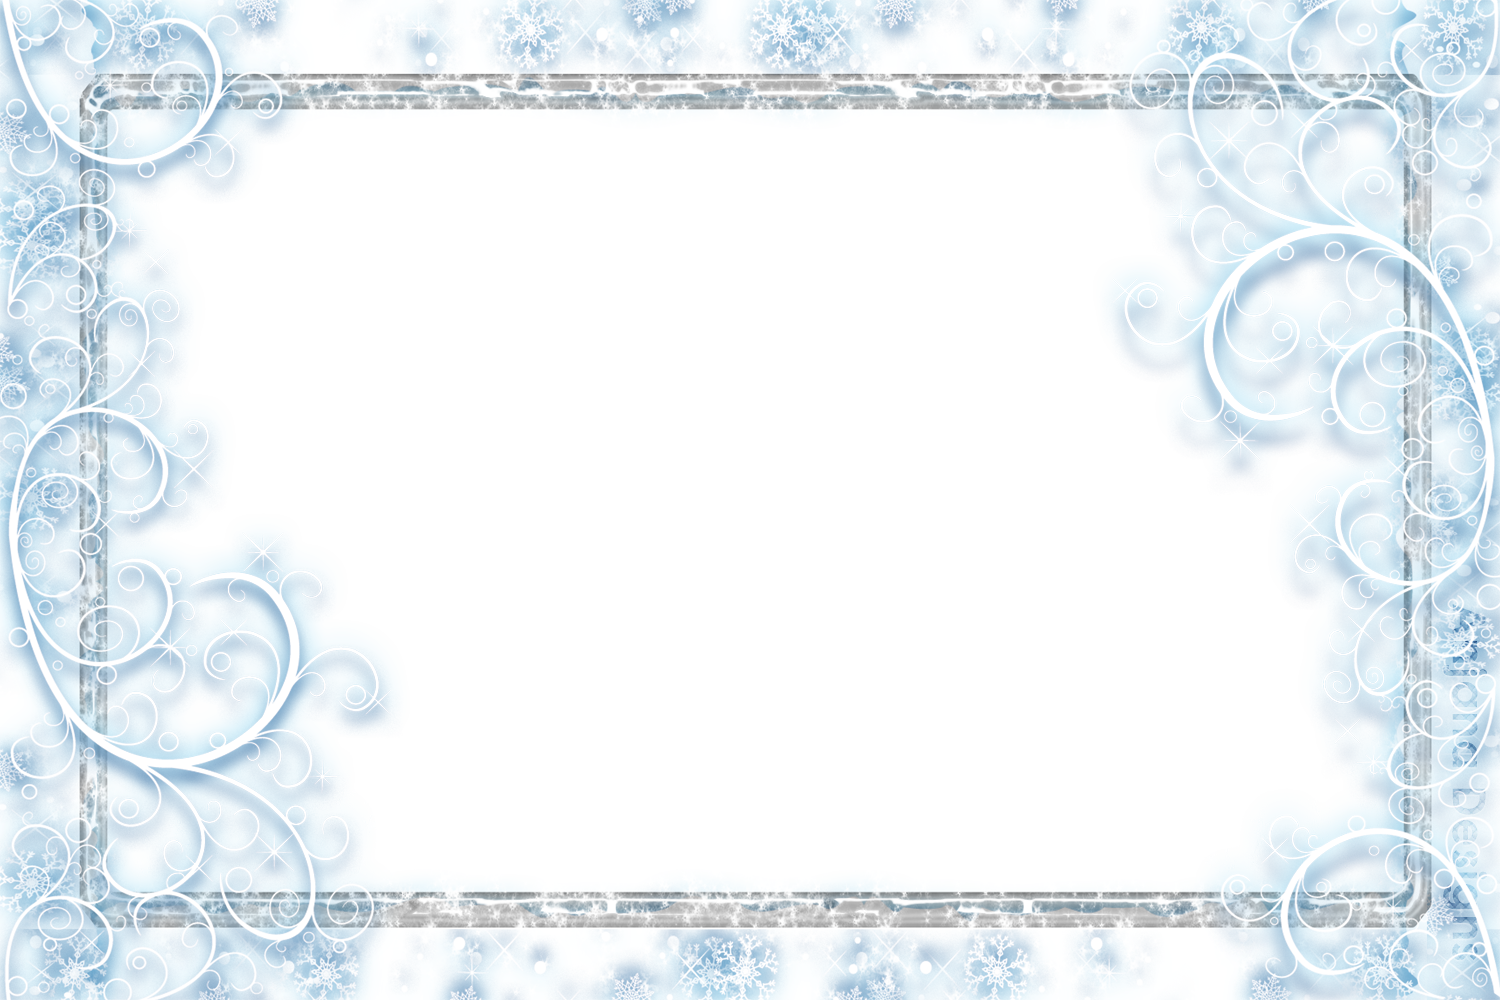 Falling snowflake clipart border image free library Snowflakes Falling Transparent PNG Pictures - Free Icons and PNG ... image free library